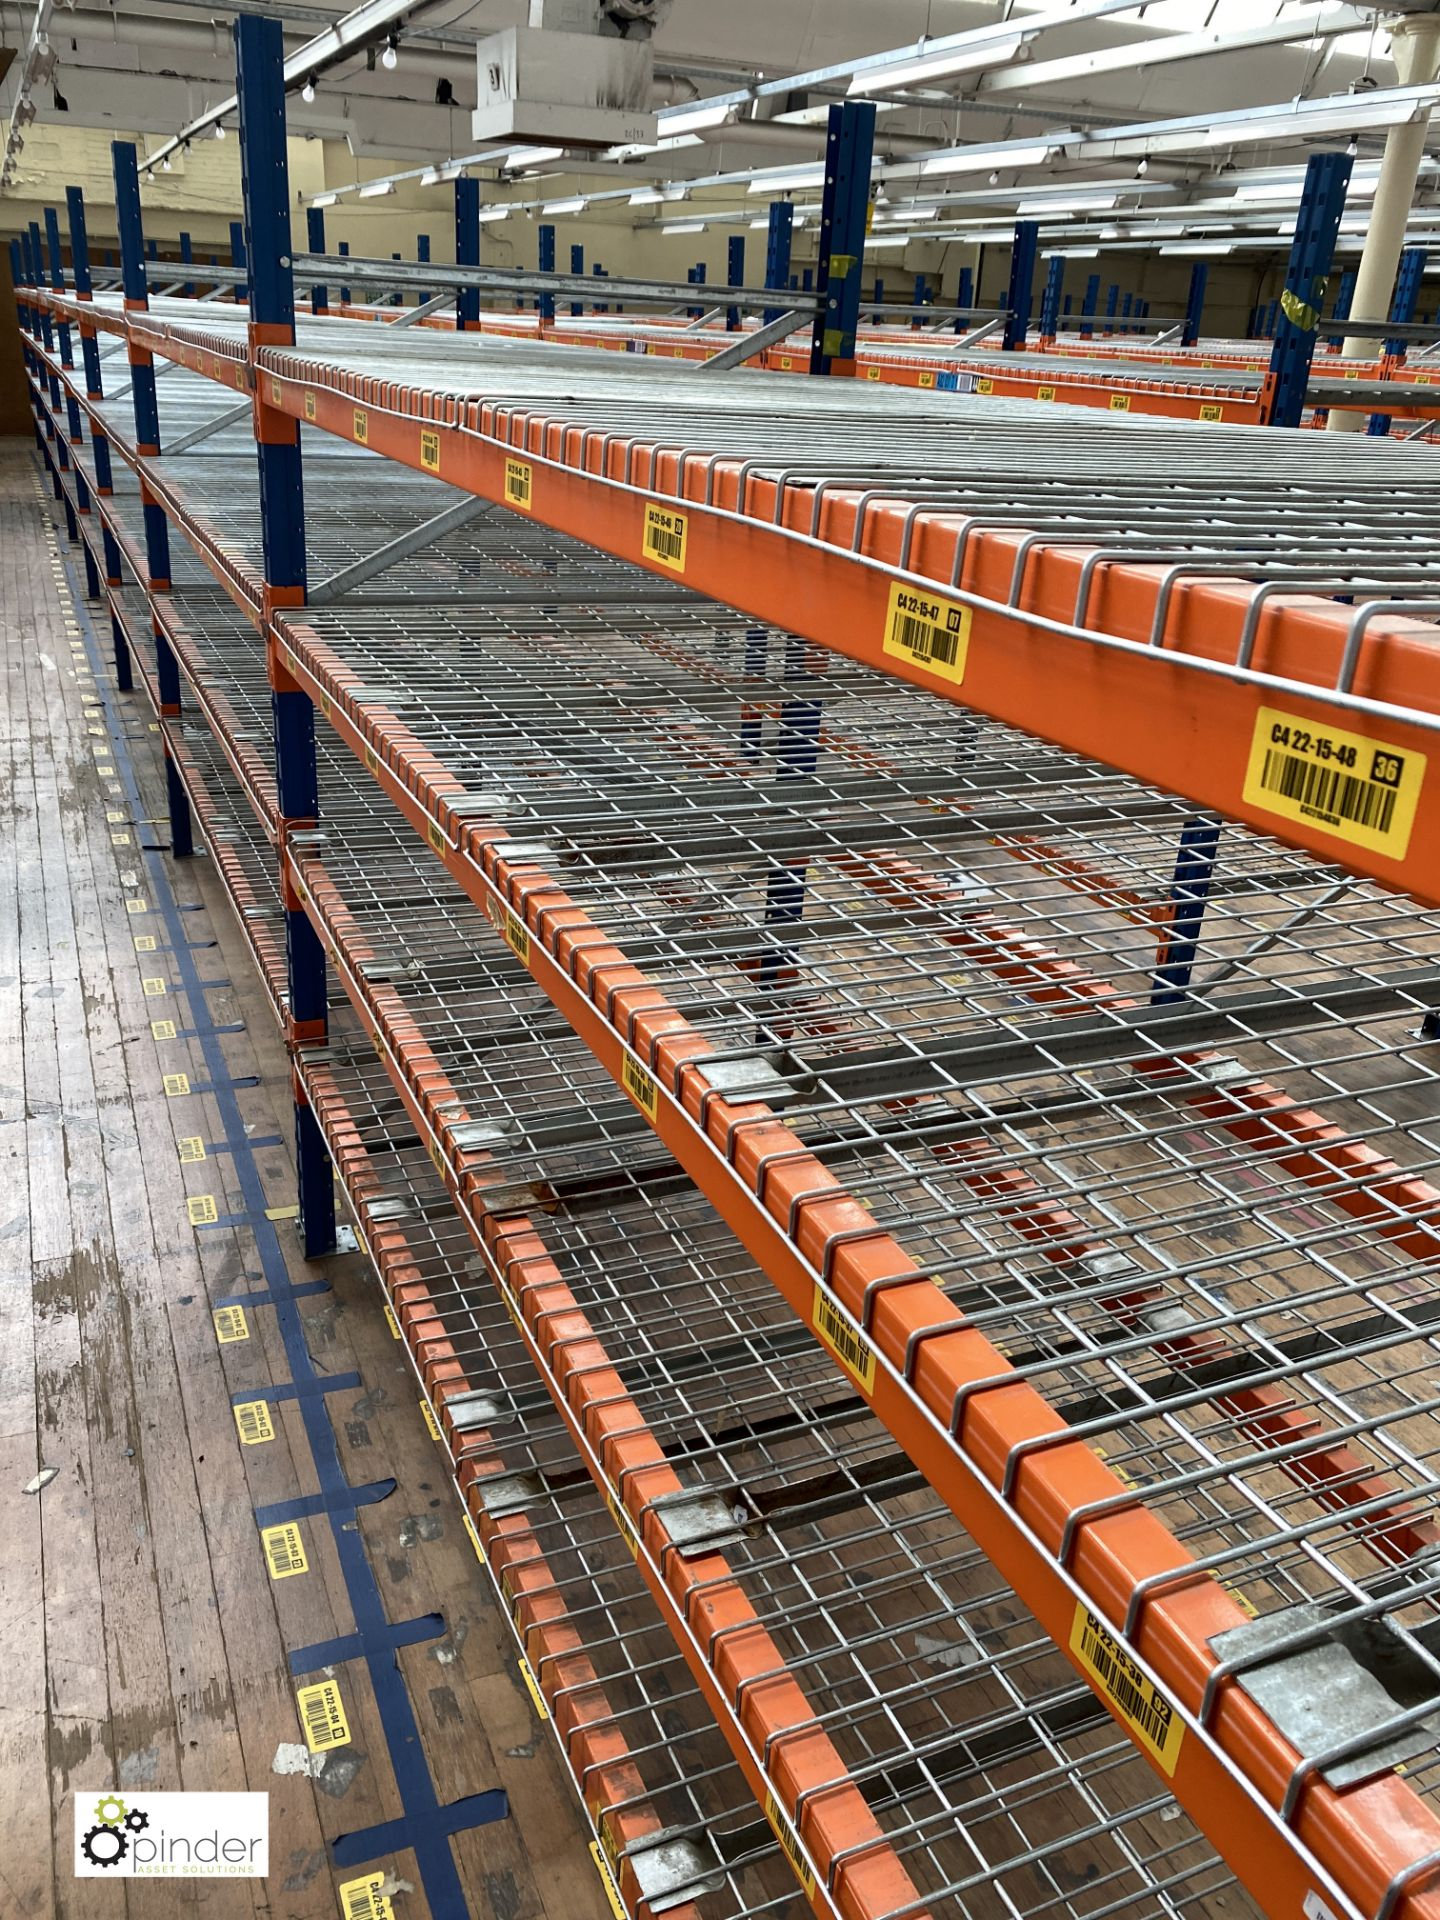 8 bays PSS 2K85 16 boltless Stock Racking, comprising 9 uprights 2400mm x 1200mm, 64 beams 2700mm, - Image 2 of 4